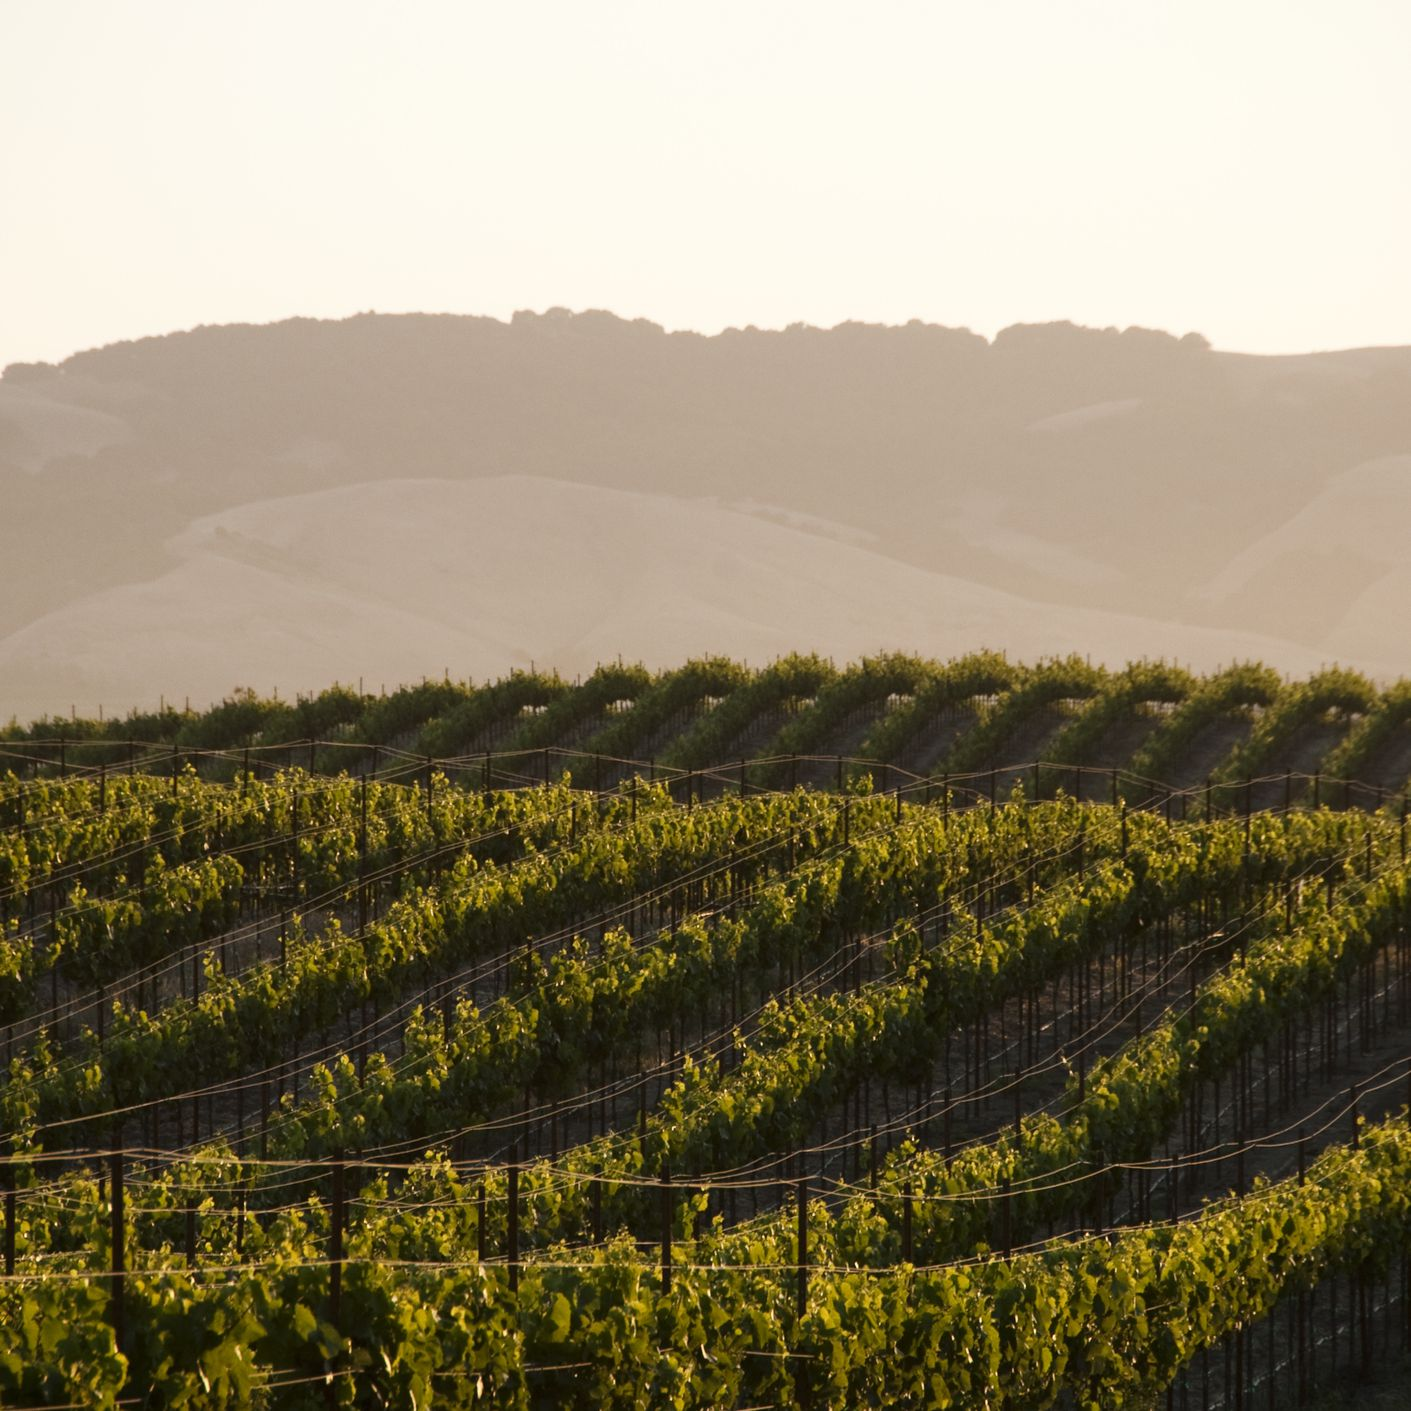 The Weather and Climate in California's Wine Country